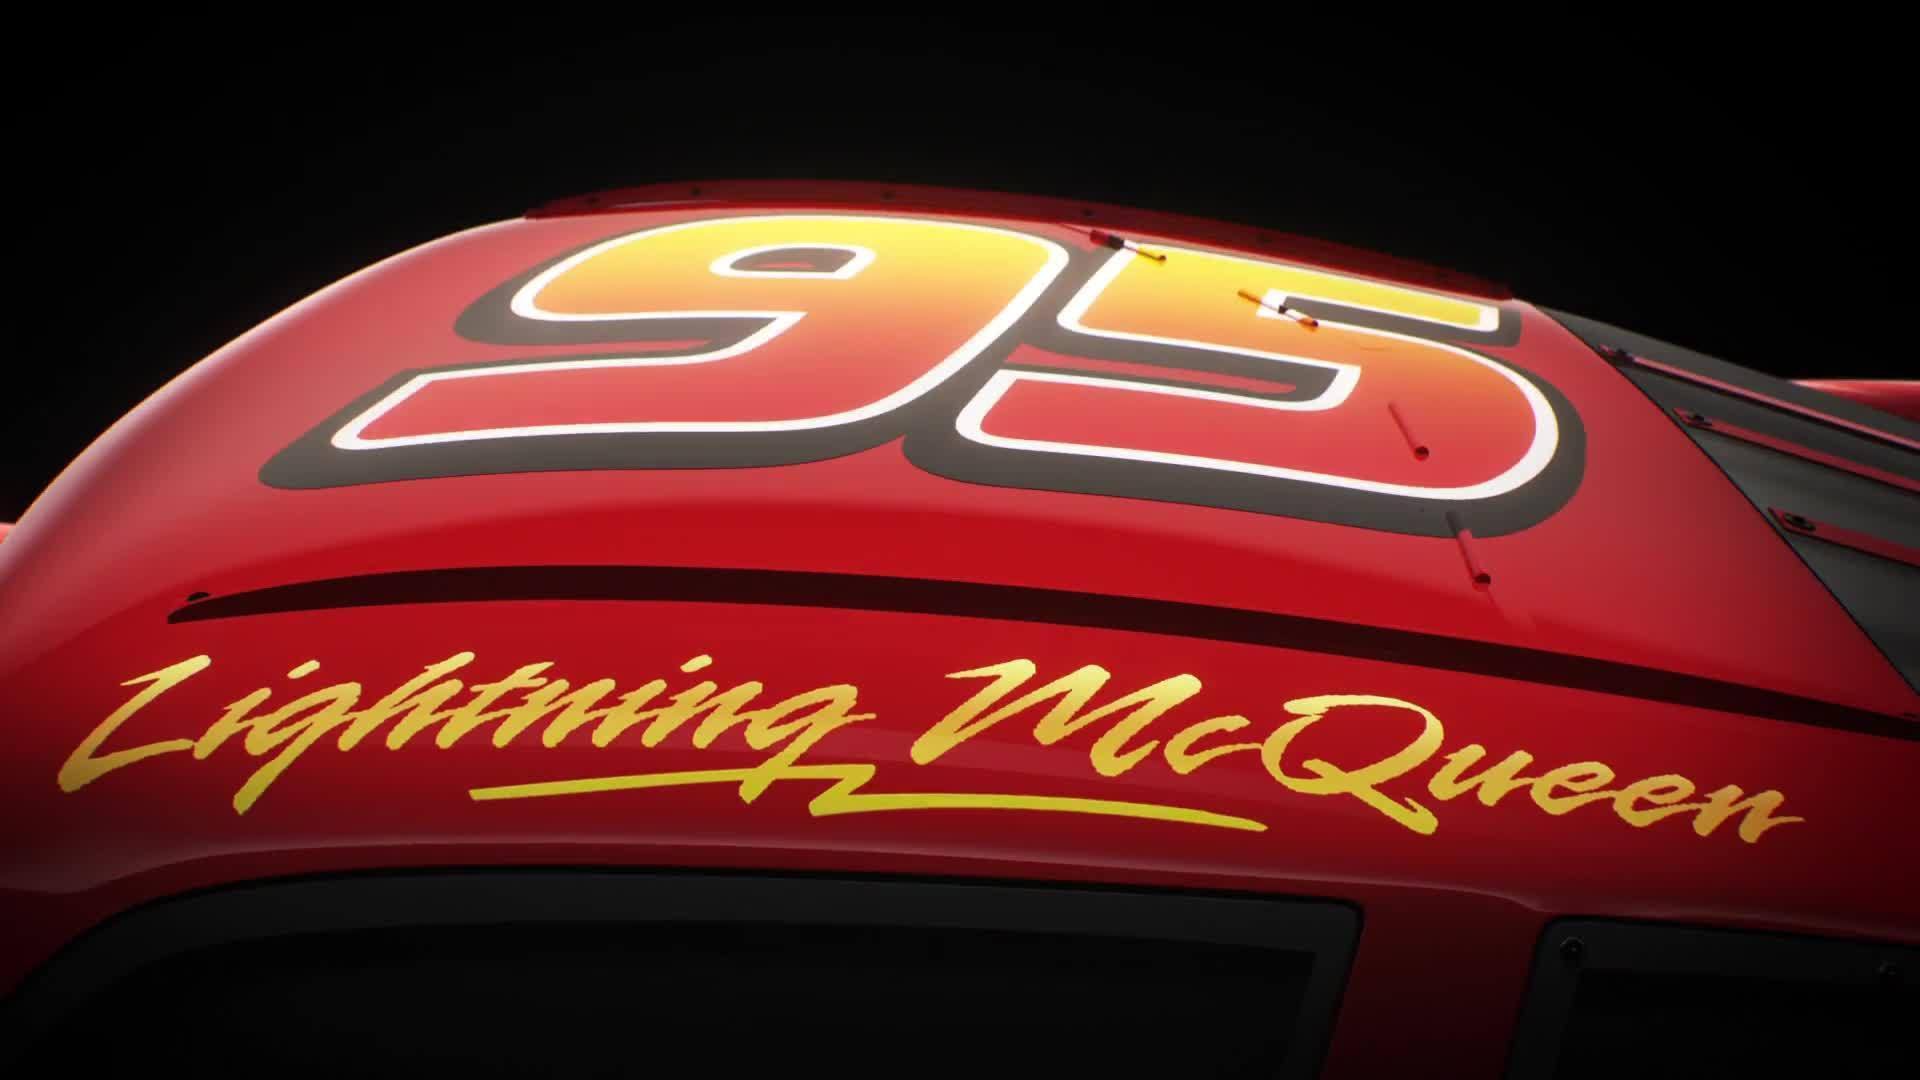 Lighting McQueen - Cars 3 - June 16